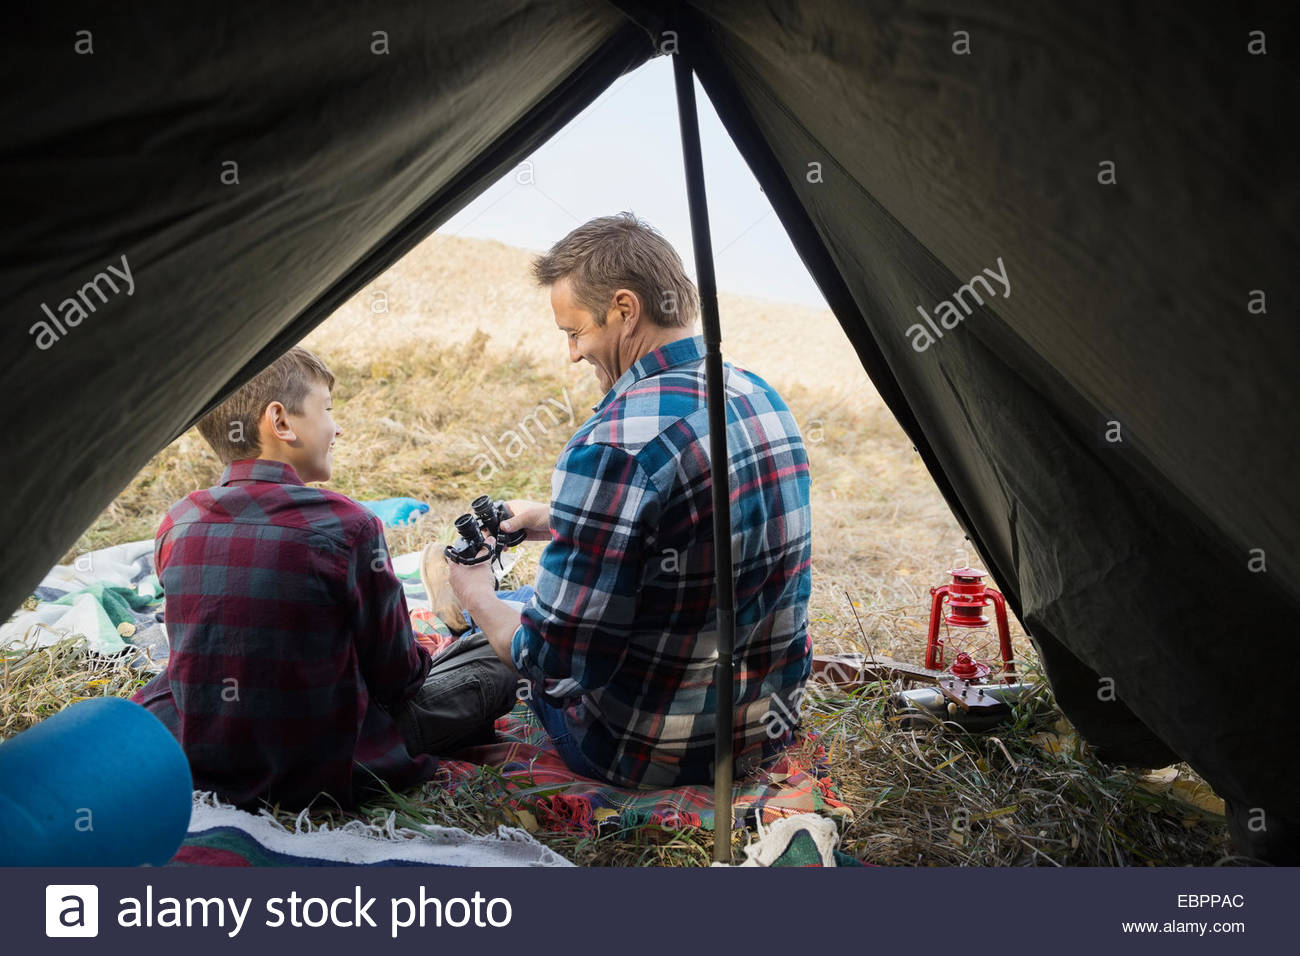 Father and son with binoculars outside tent - Stock Image